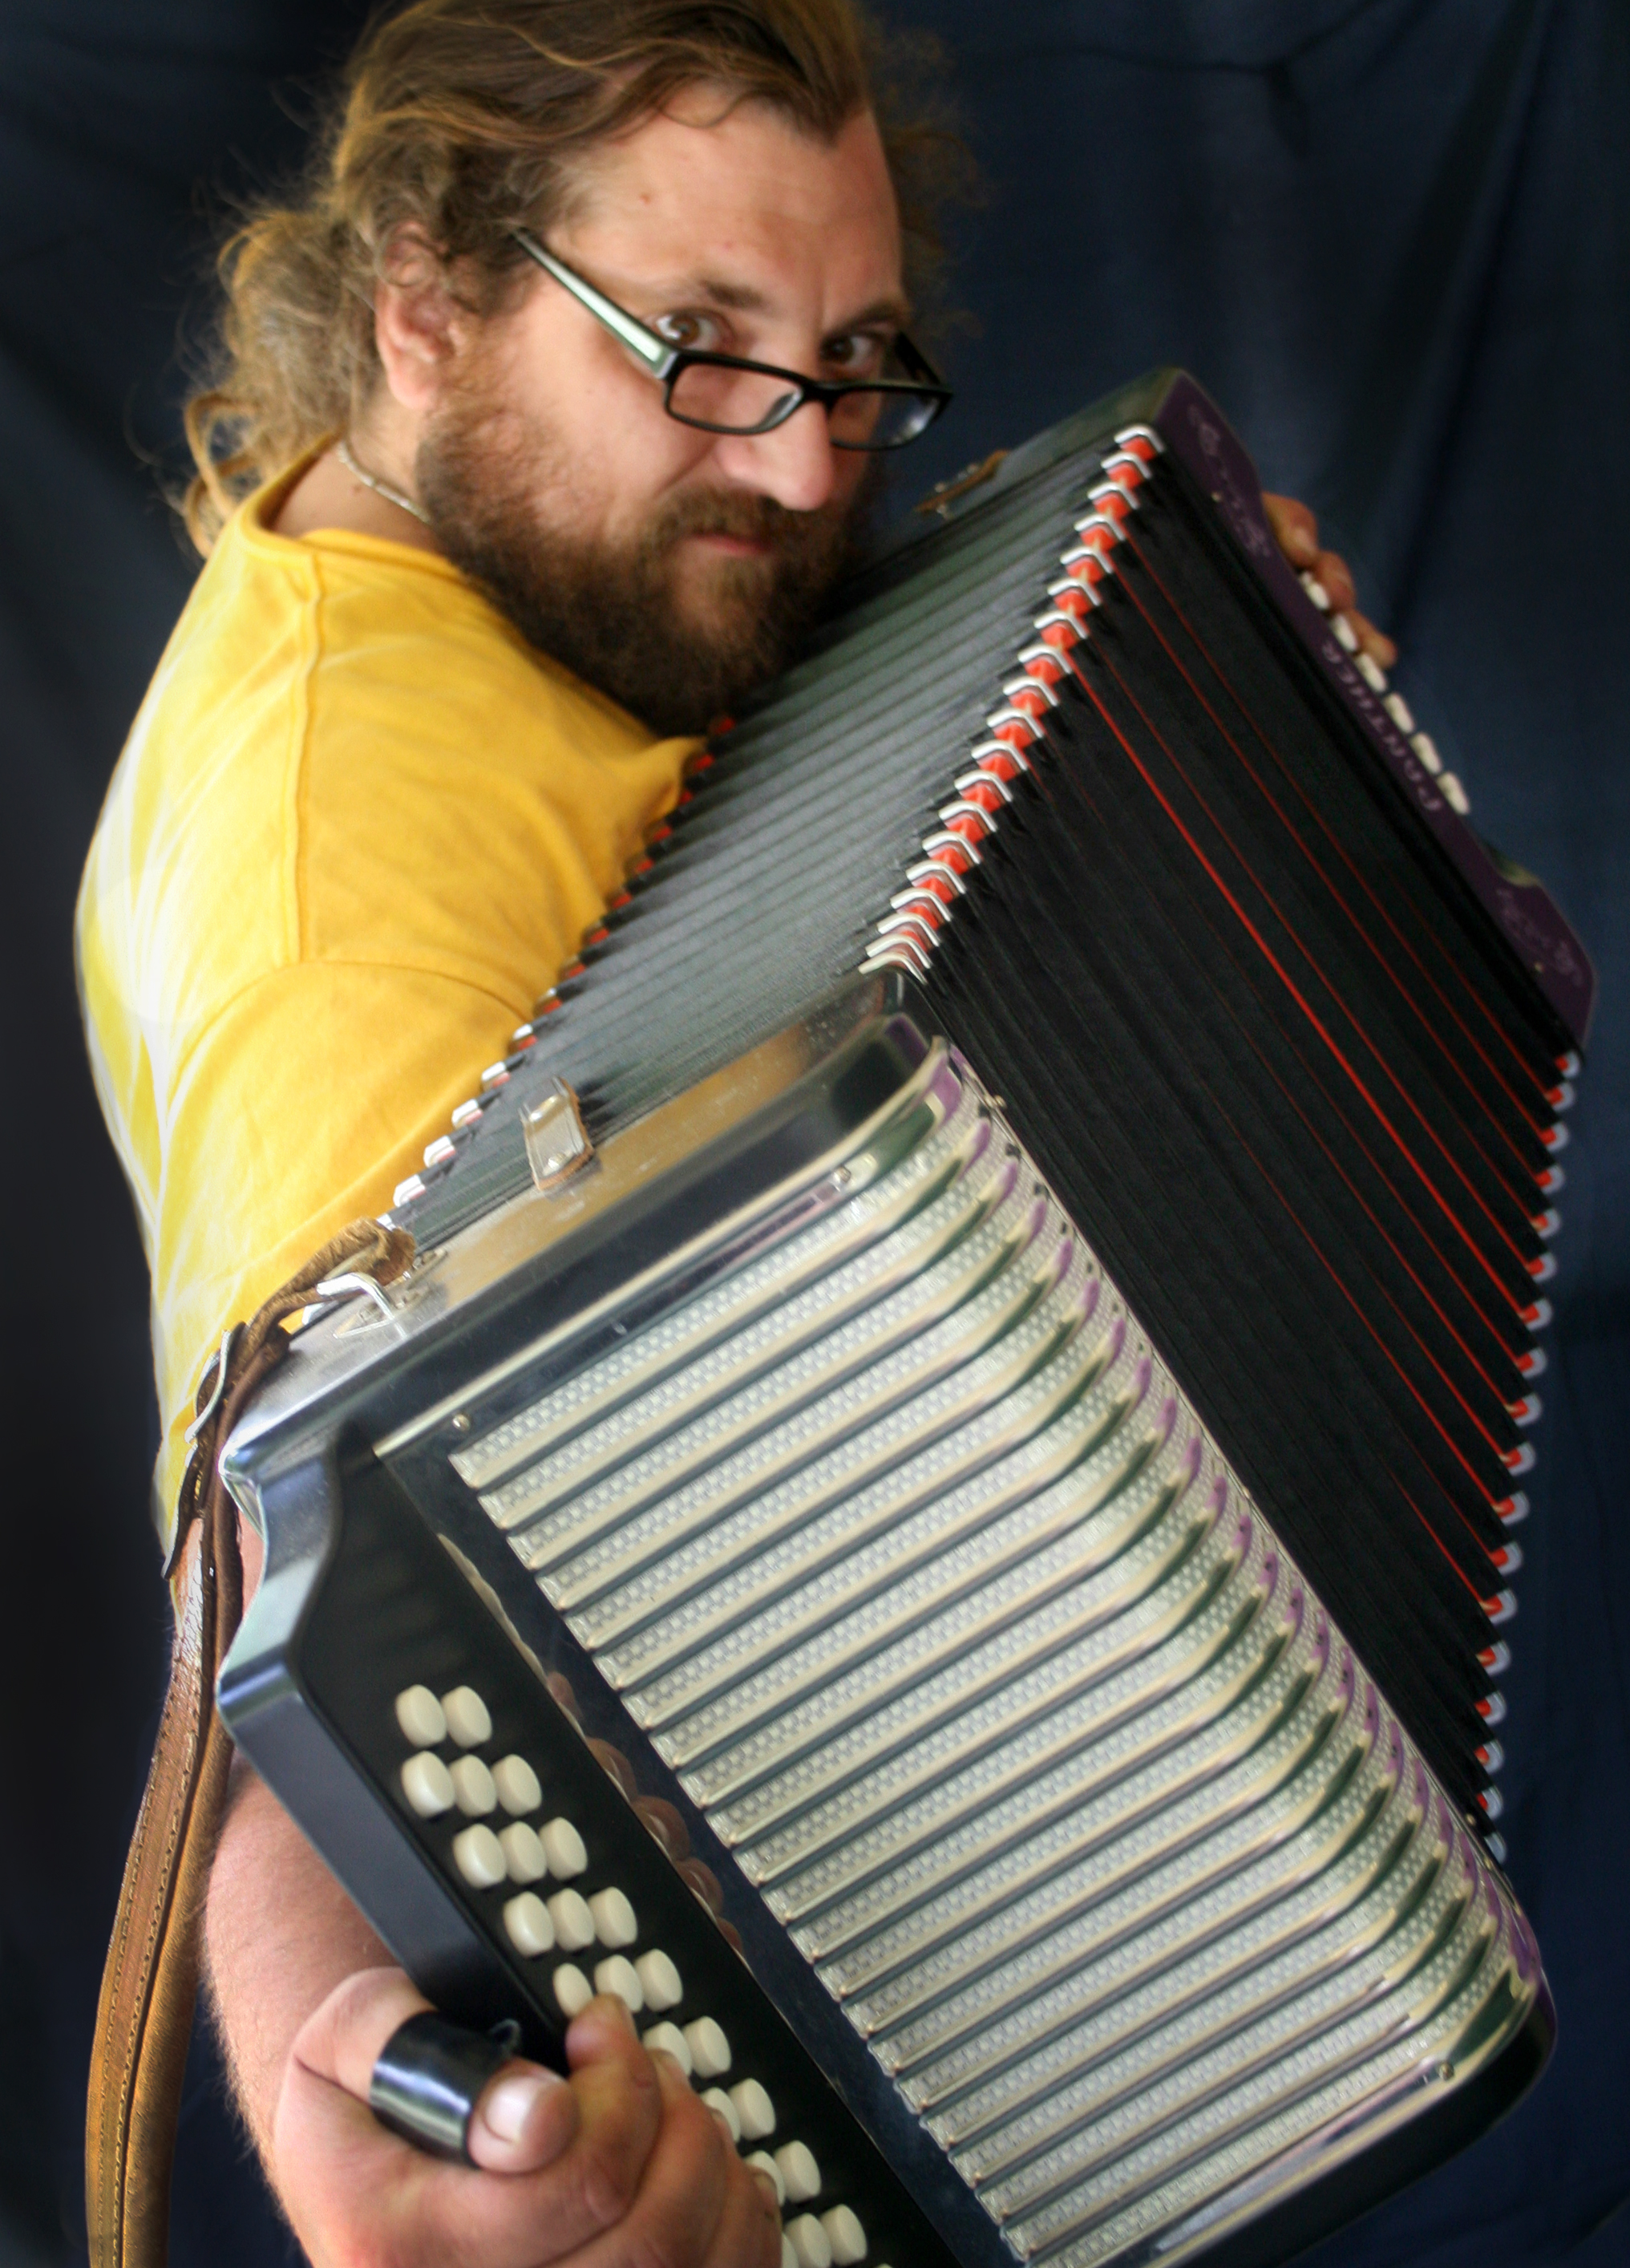 Ron_accordion.jpg